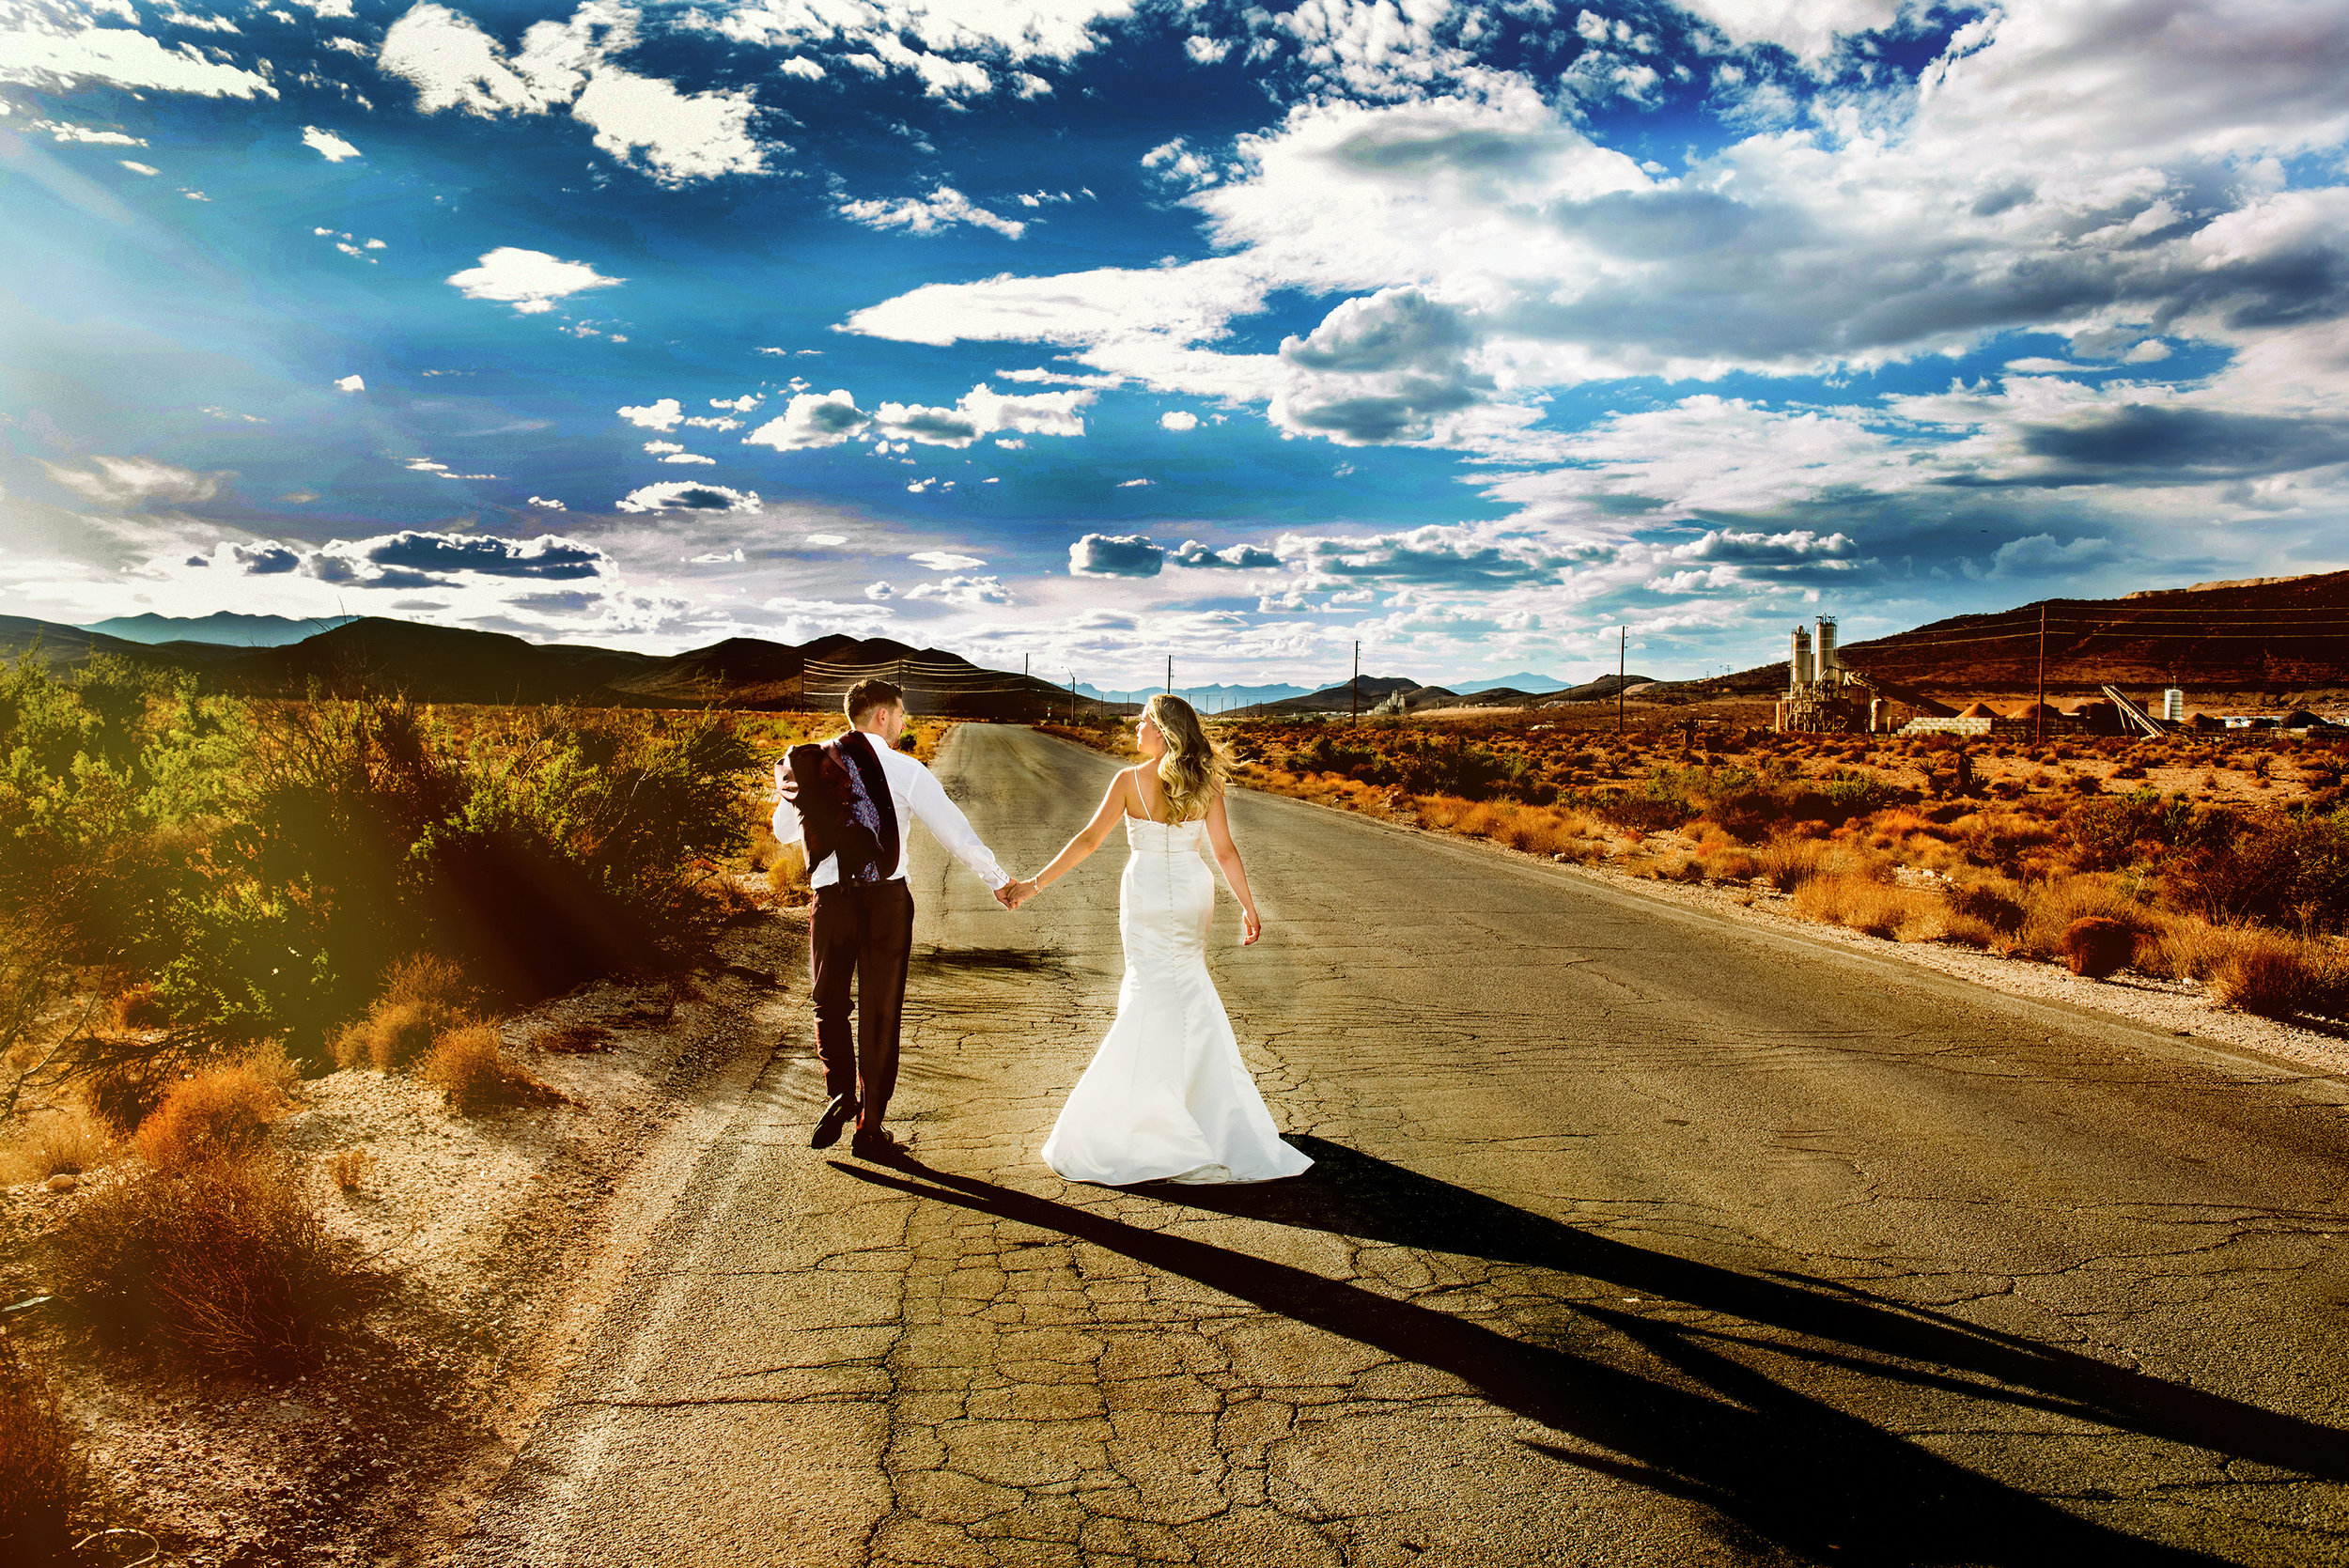 Best Affordable Las Vegas Wedding Photographer https://keith-kaplan-jrek.squarespace.com/config/